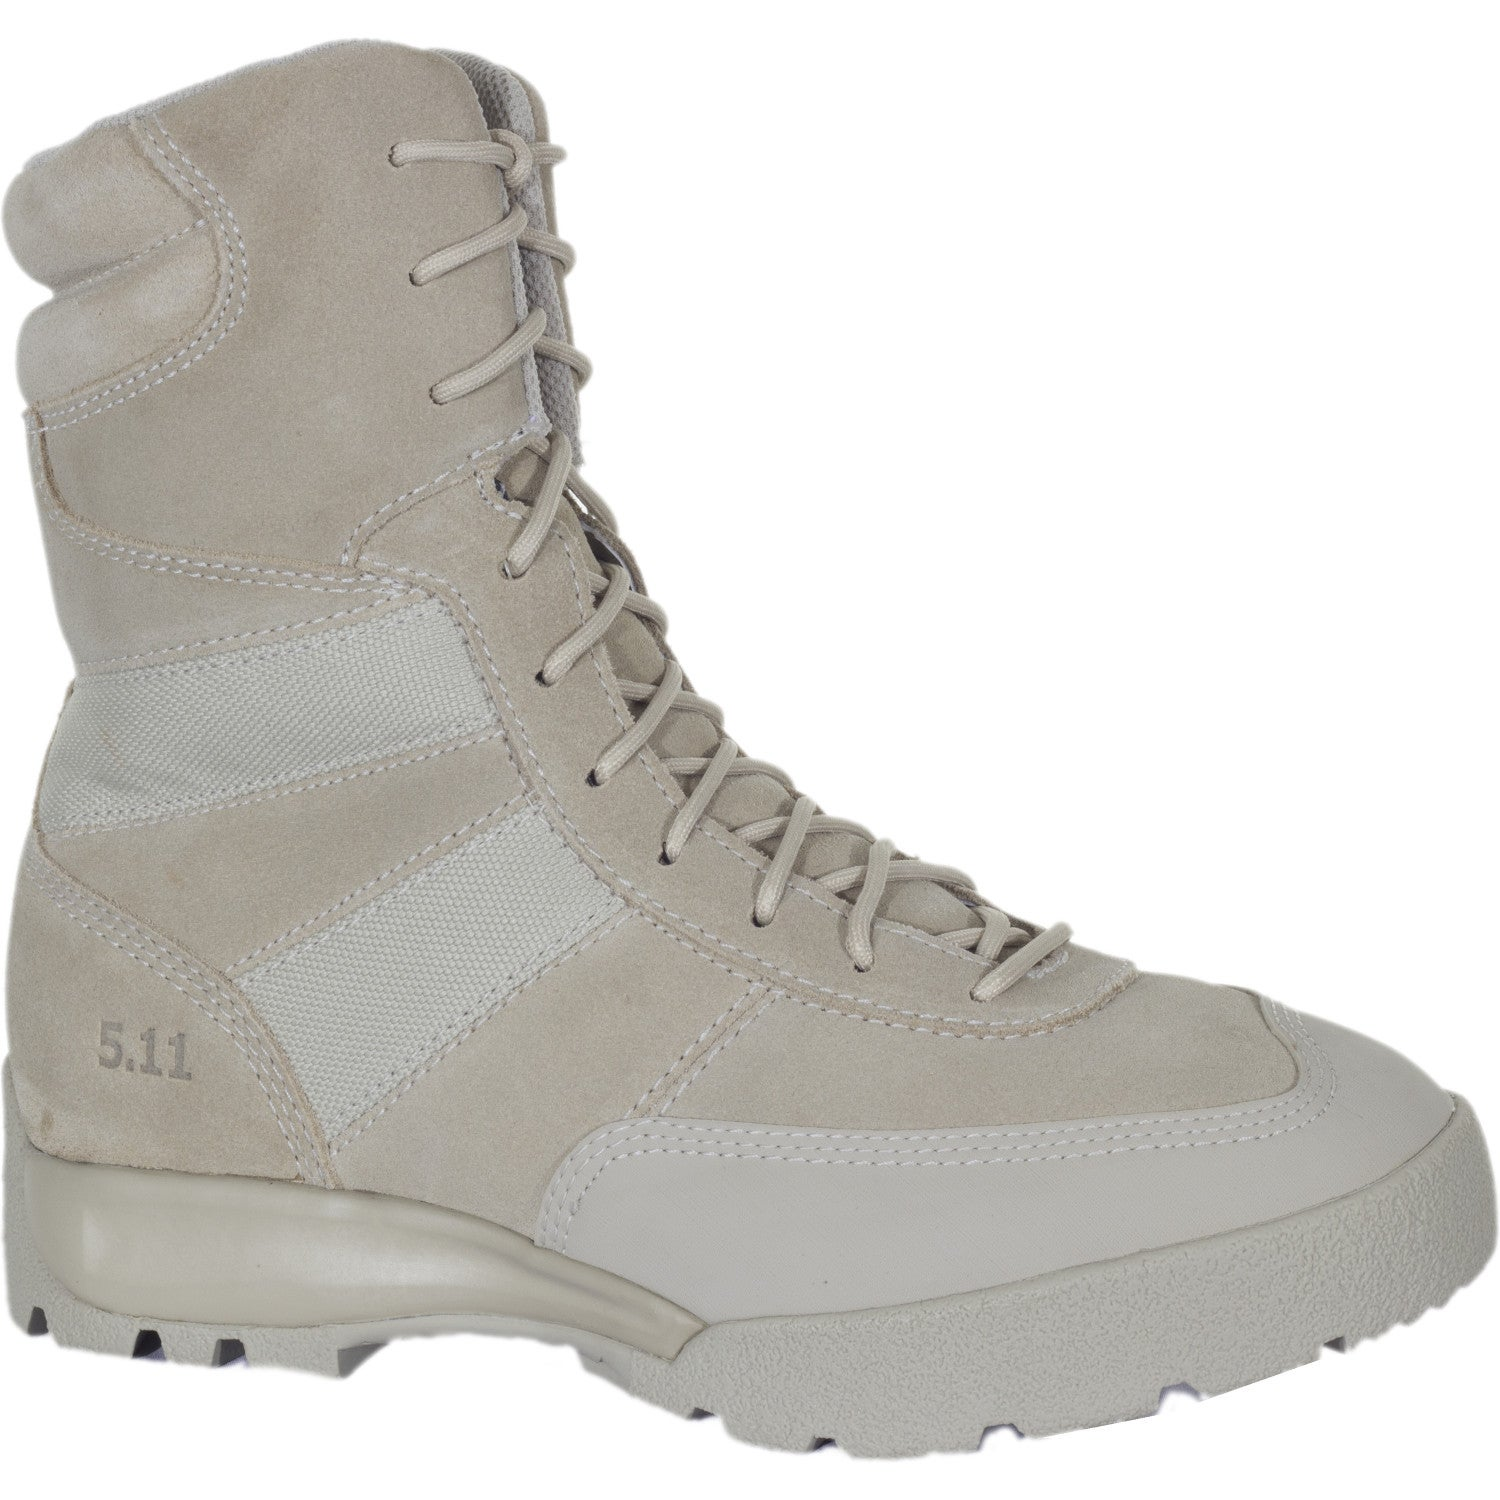 5.11 Tactical HRT Urban Boots